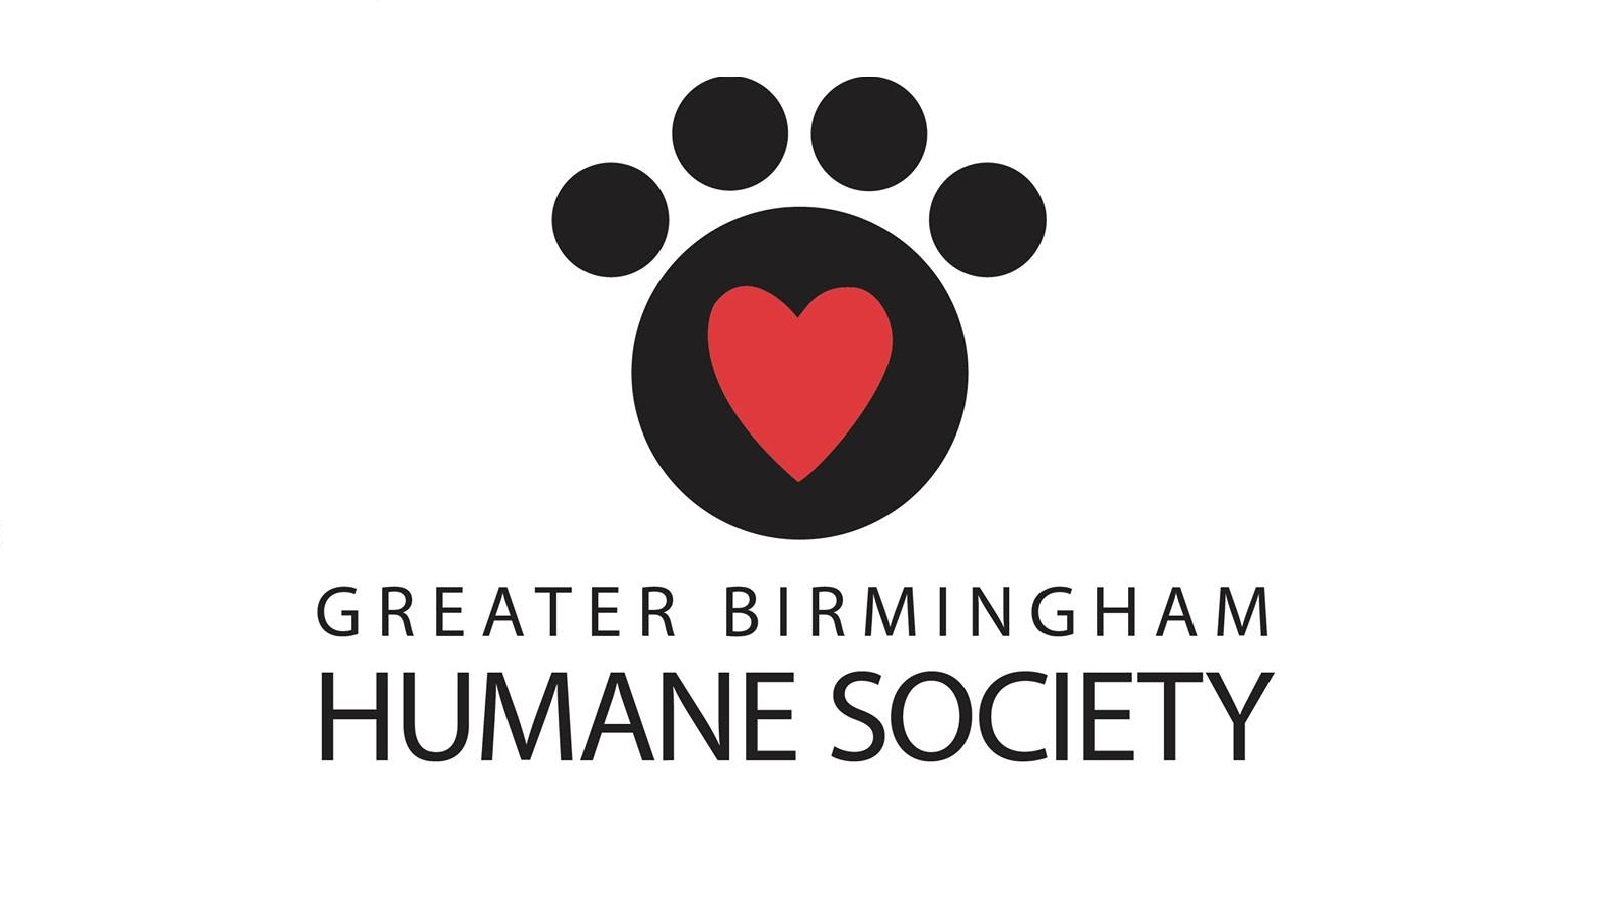 The Greater Birmingham Humane Society